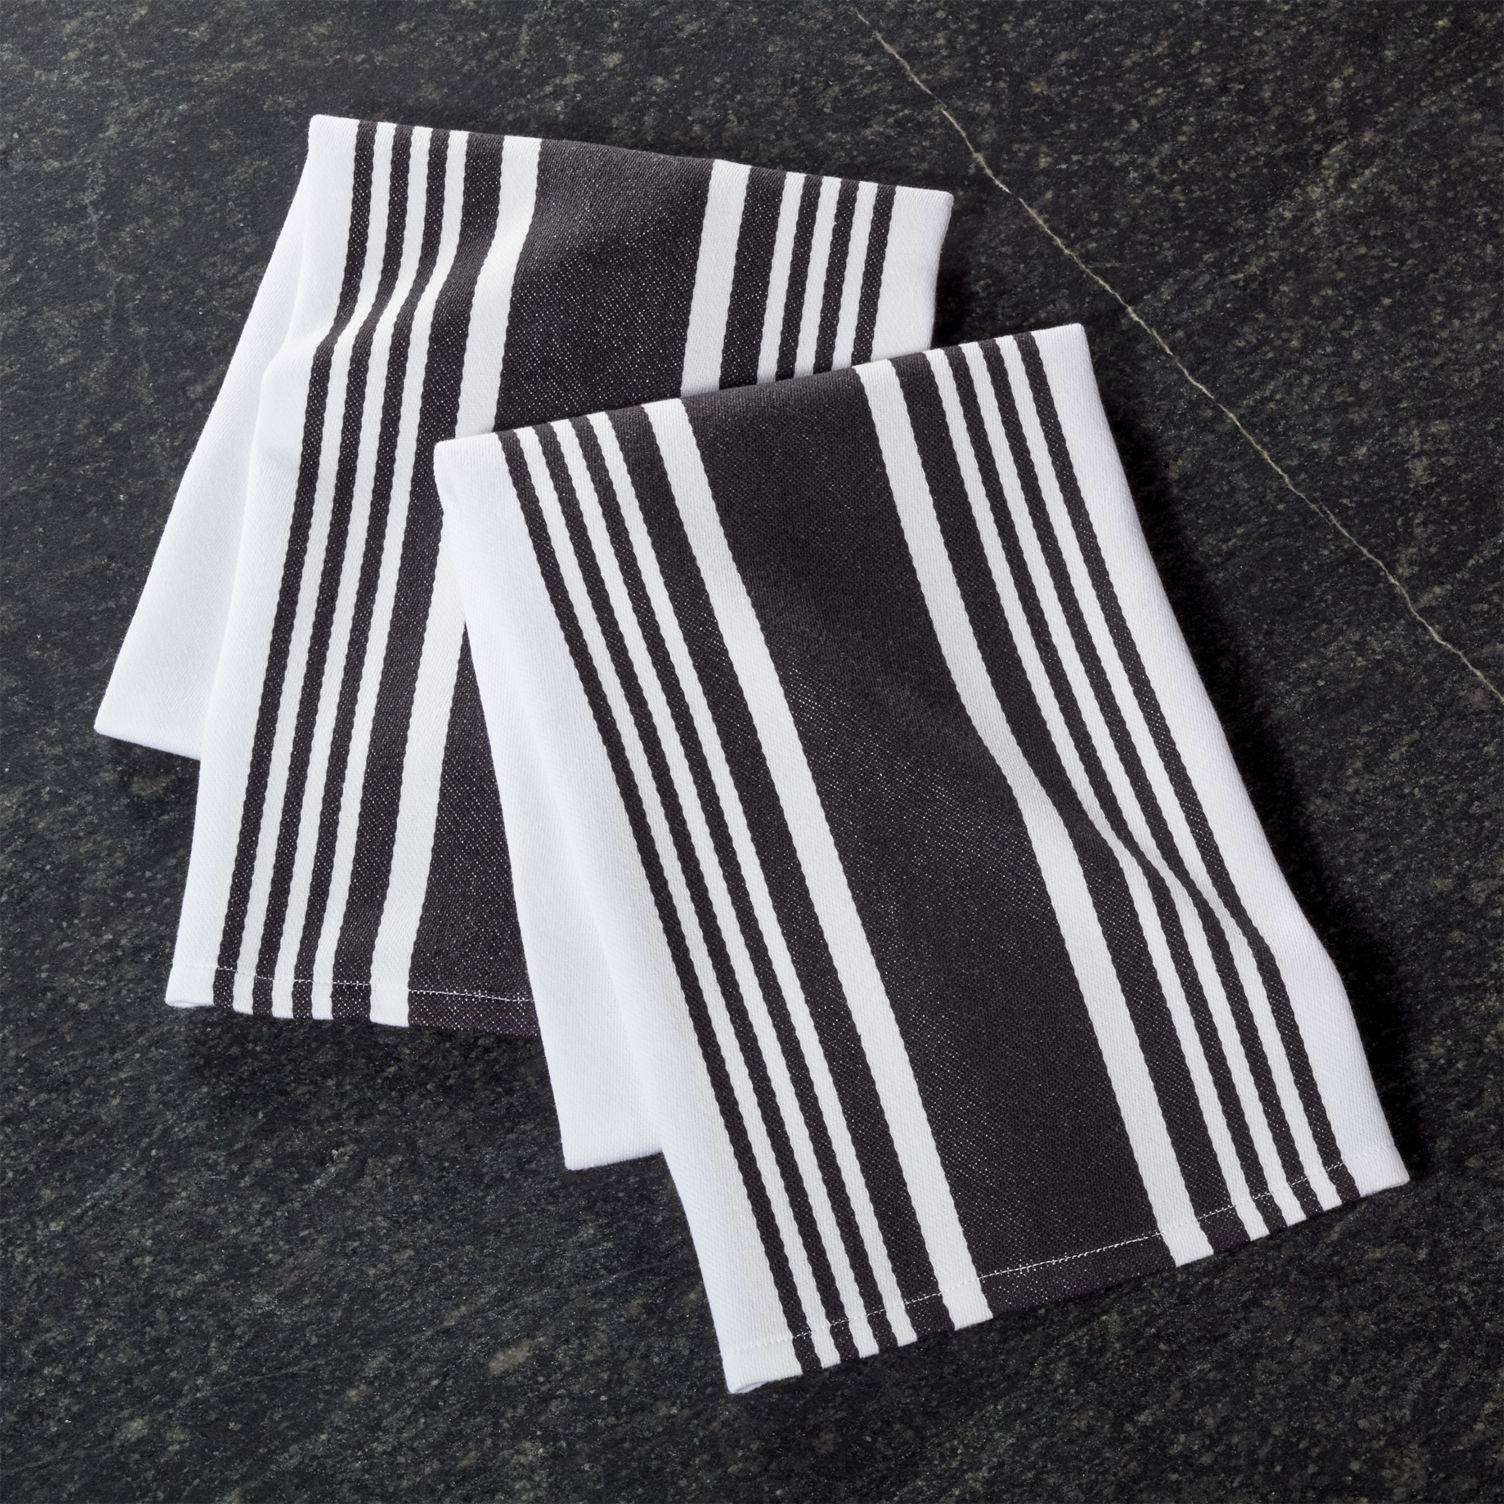 Black and white striped dish towels